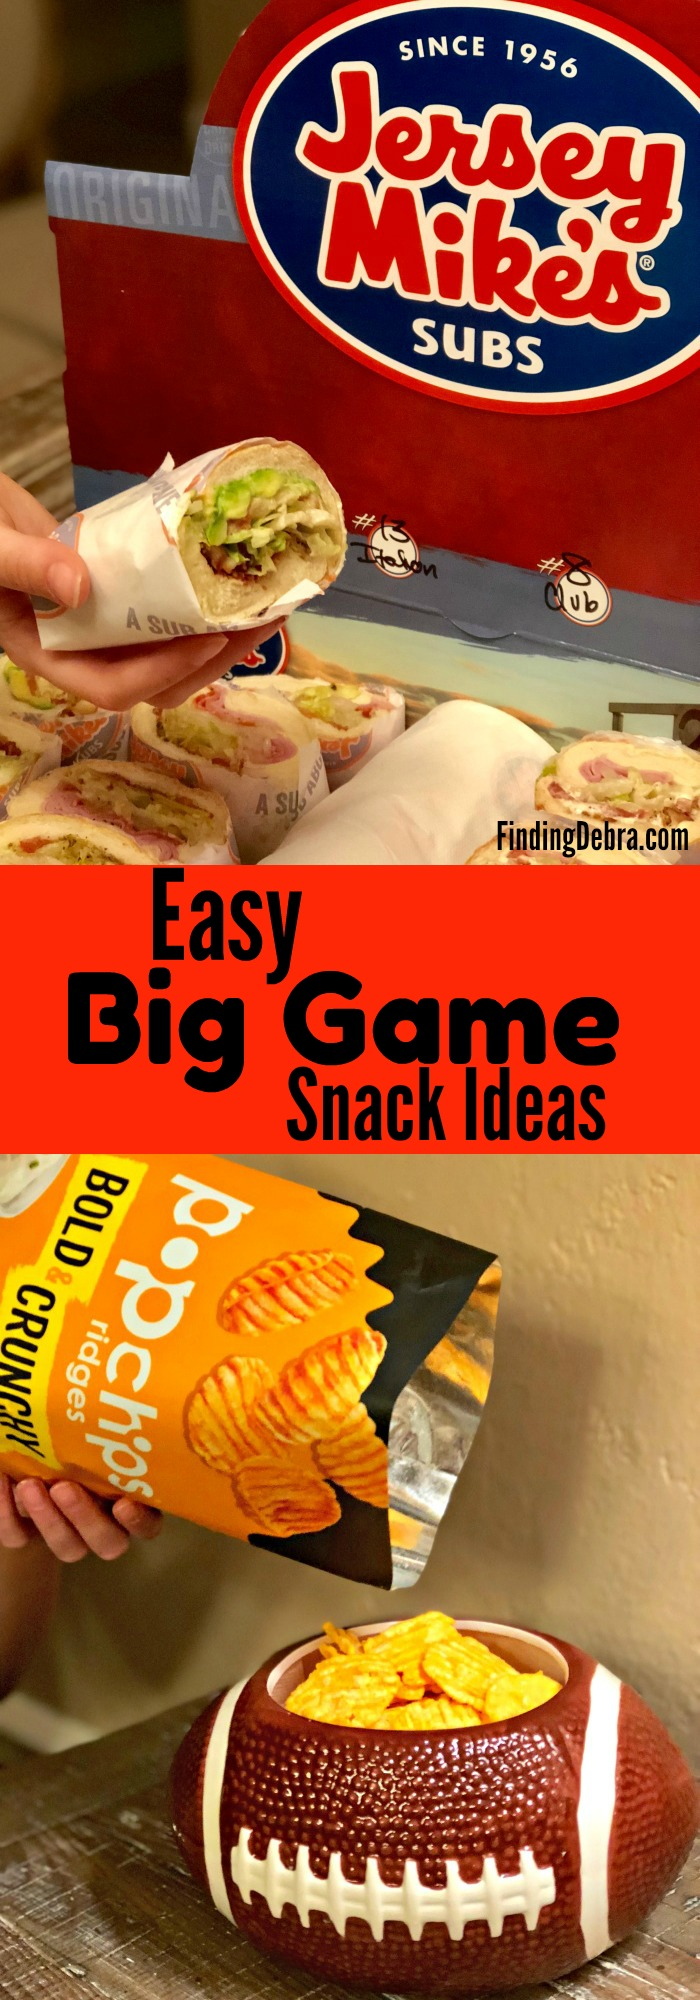 Easy Big Game Snack Ideas for gameday entertaining - football and more.